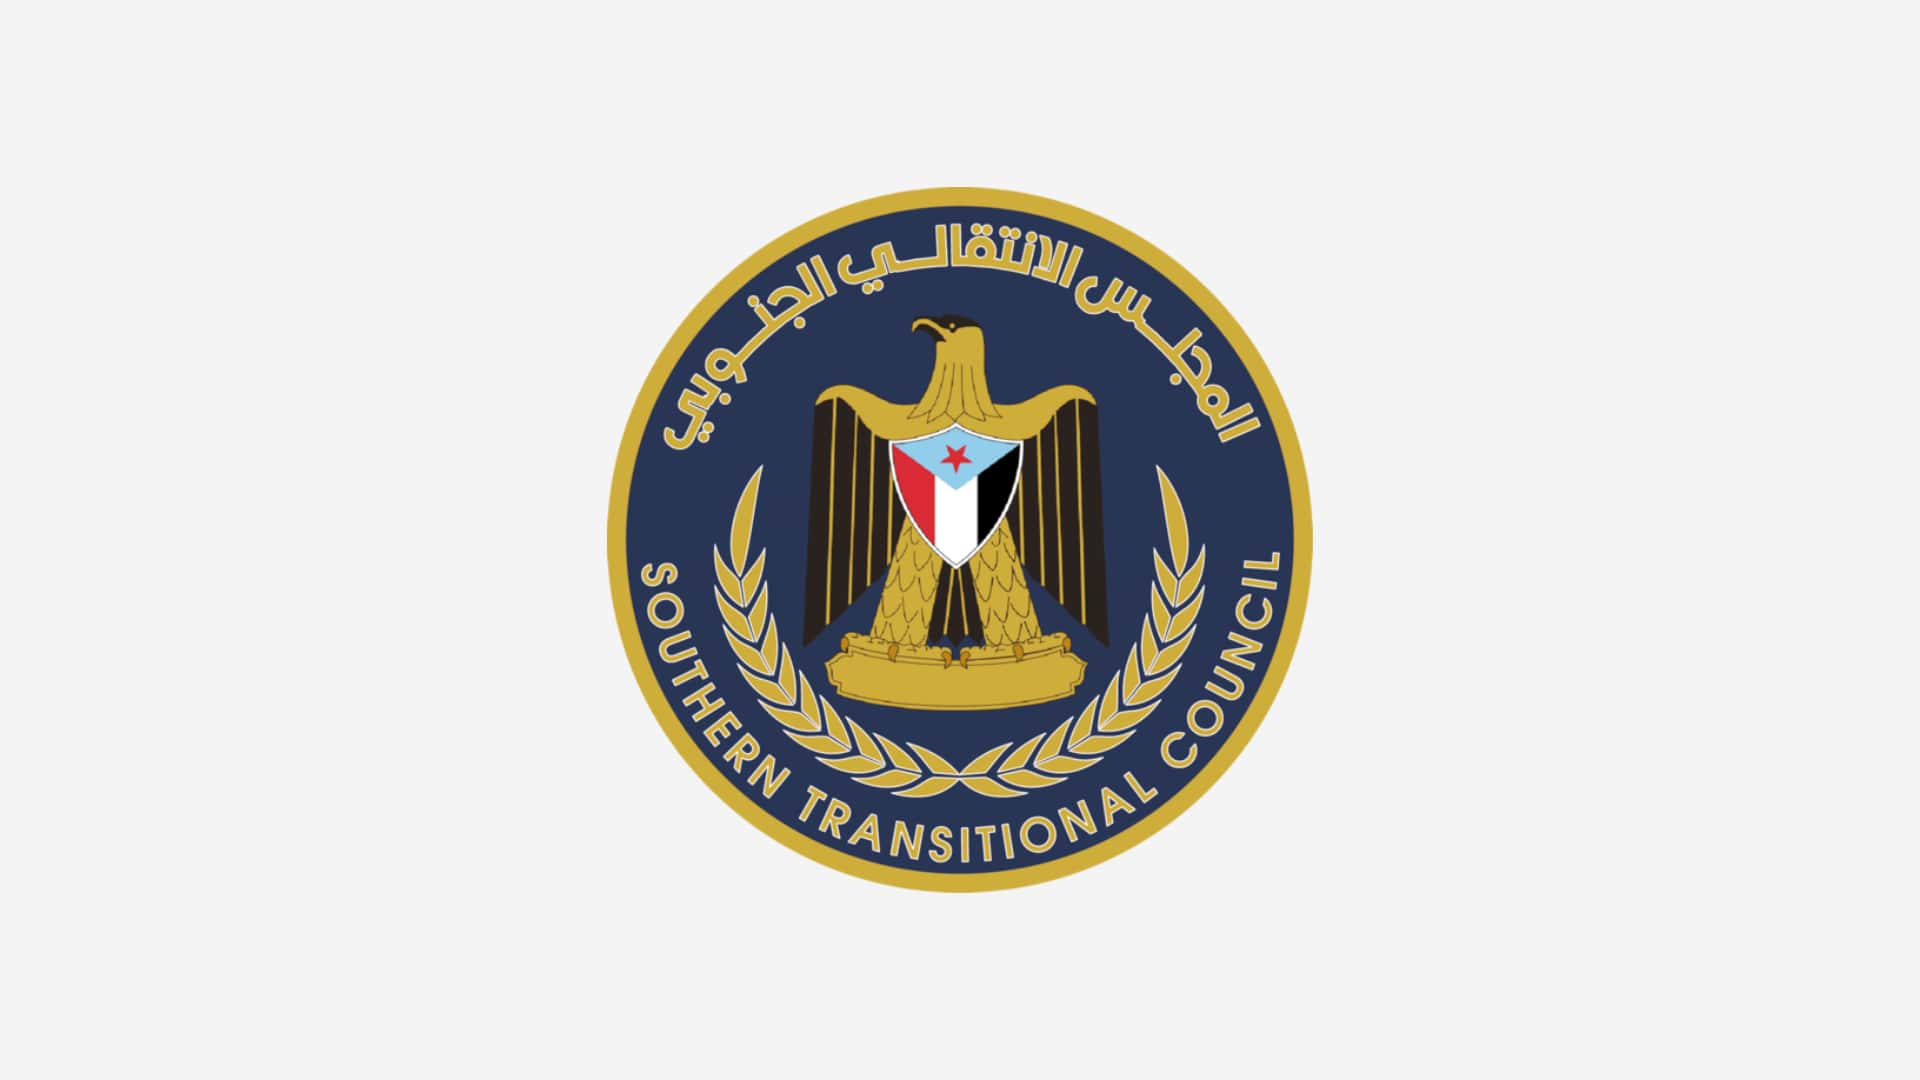 Official Logo of Southern Transitional Council